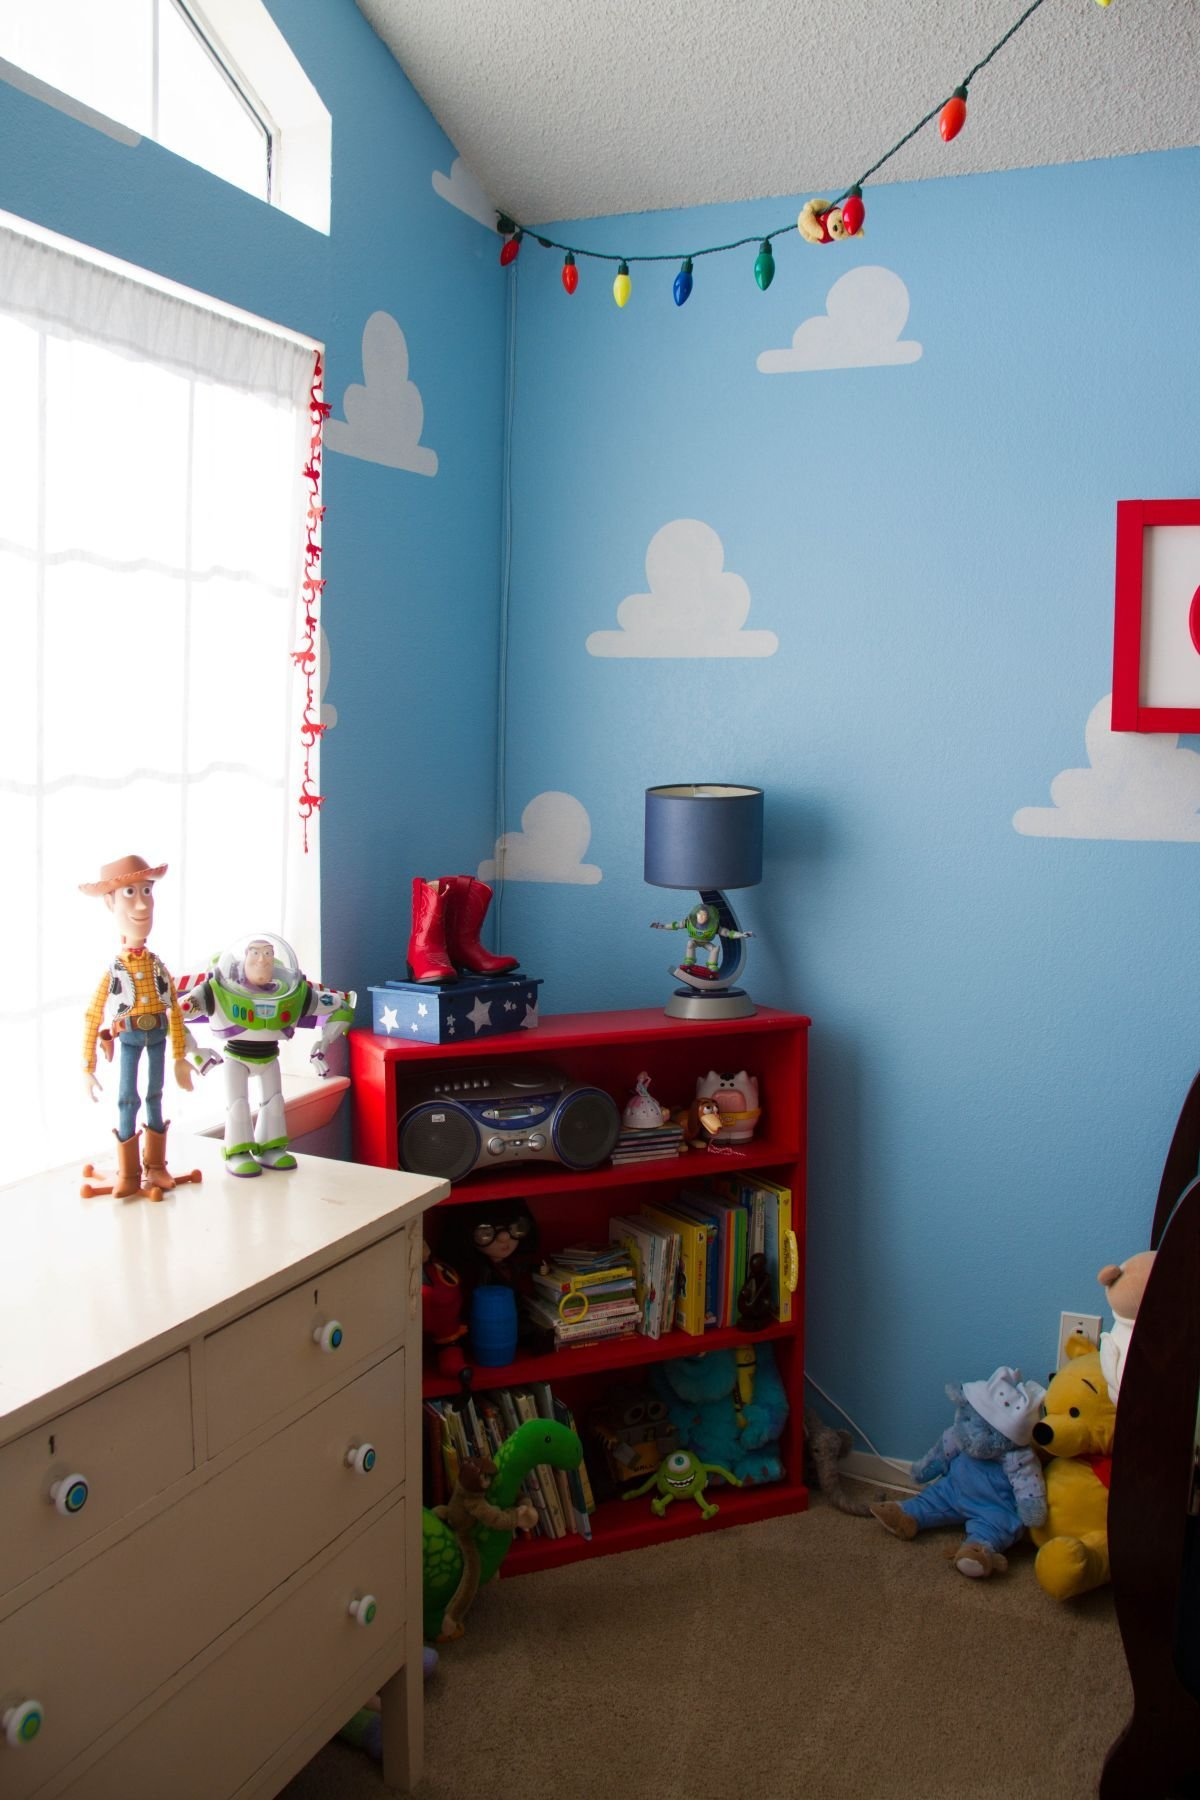 Best Toy Story Themed Kids Room Design And Décor Options With Pictures